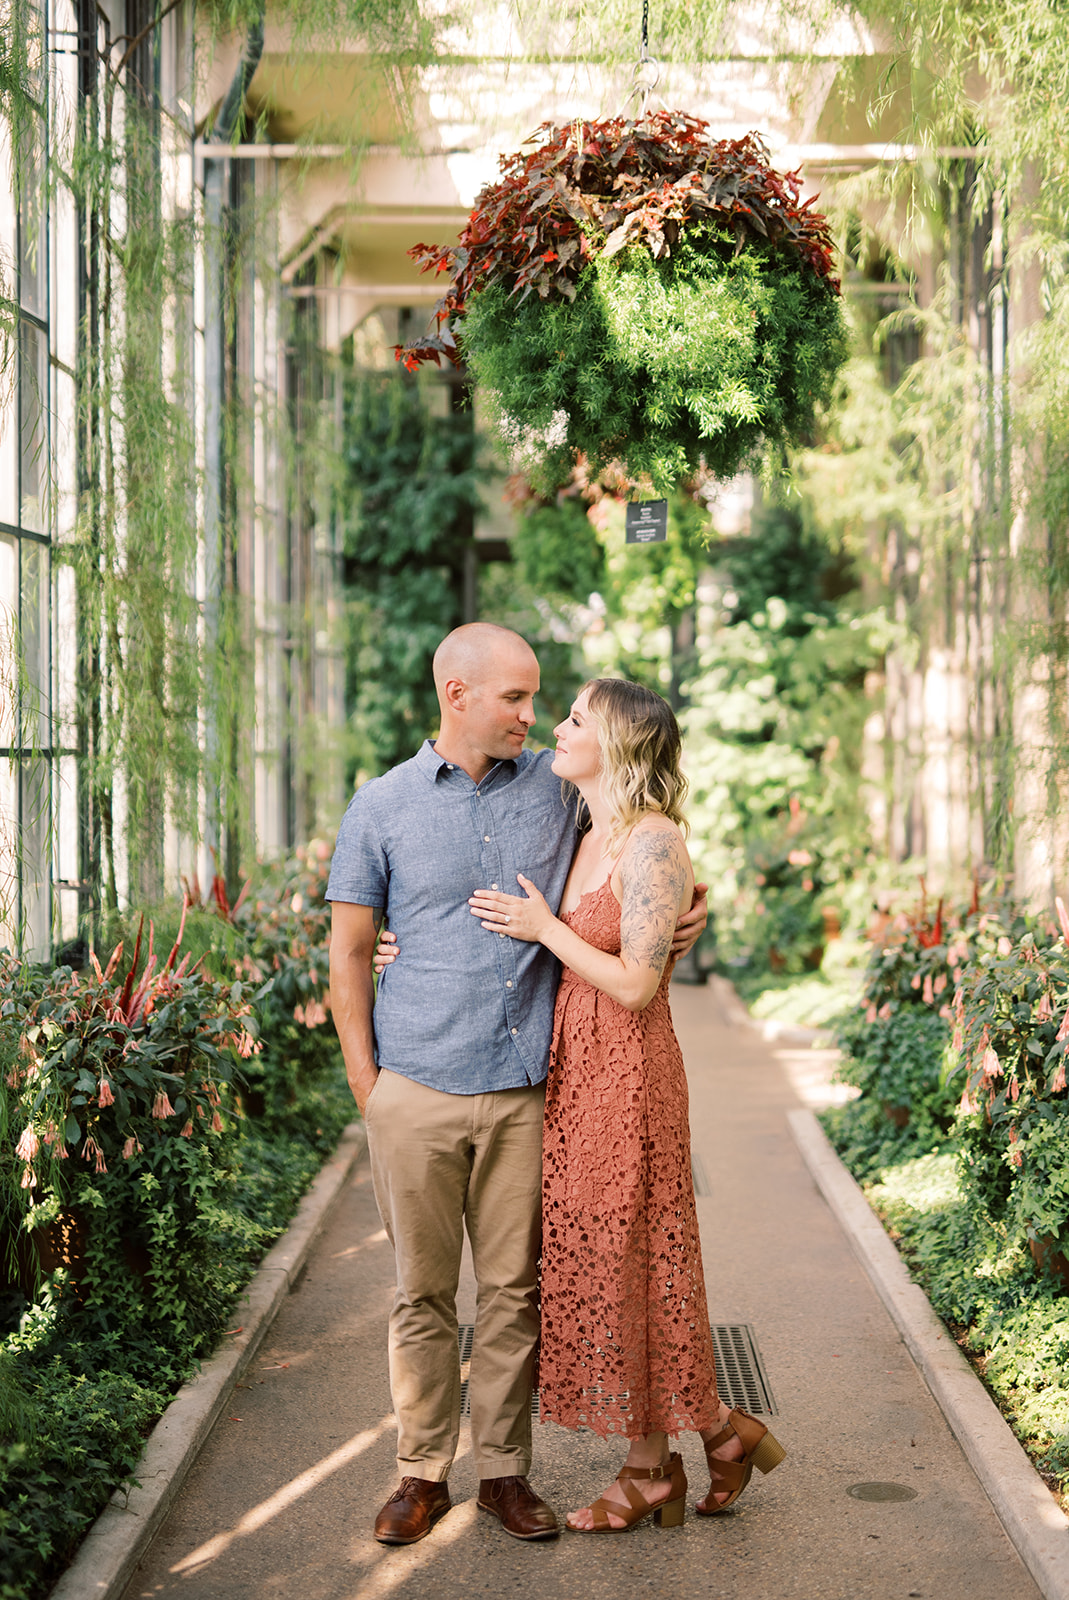 An engagement session at the conservatory at Longwood Gardens.